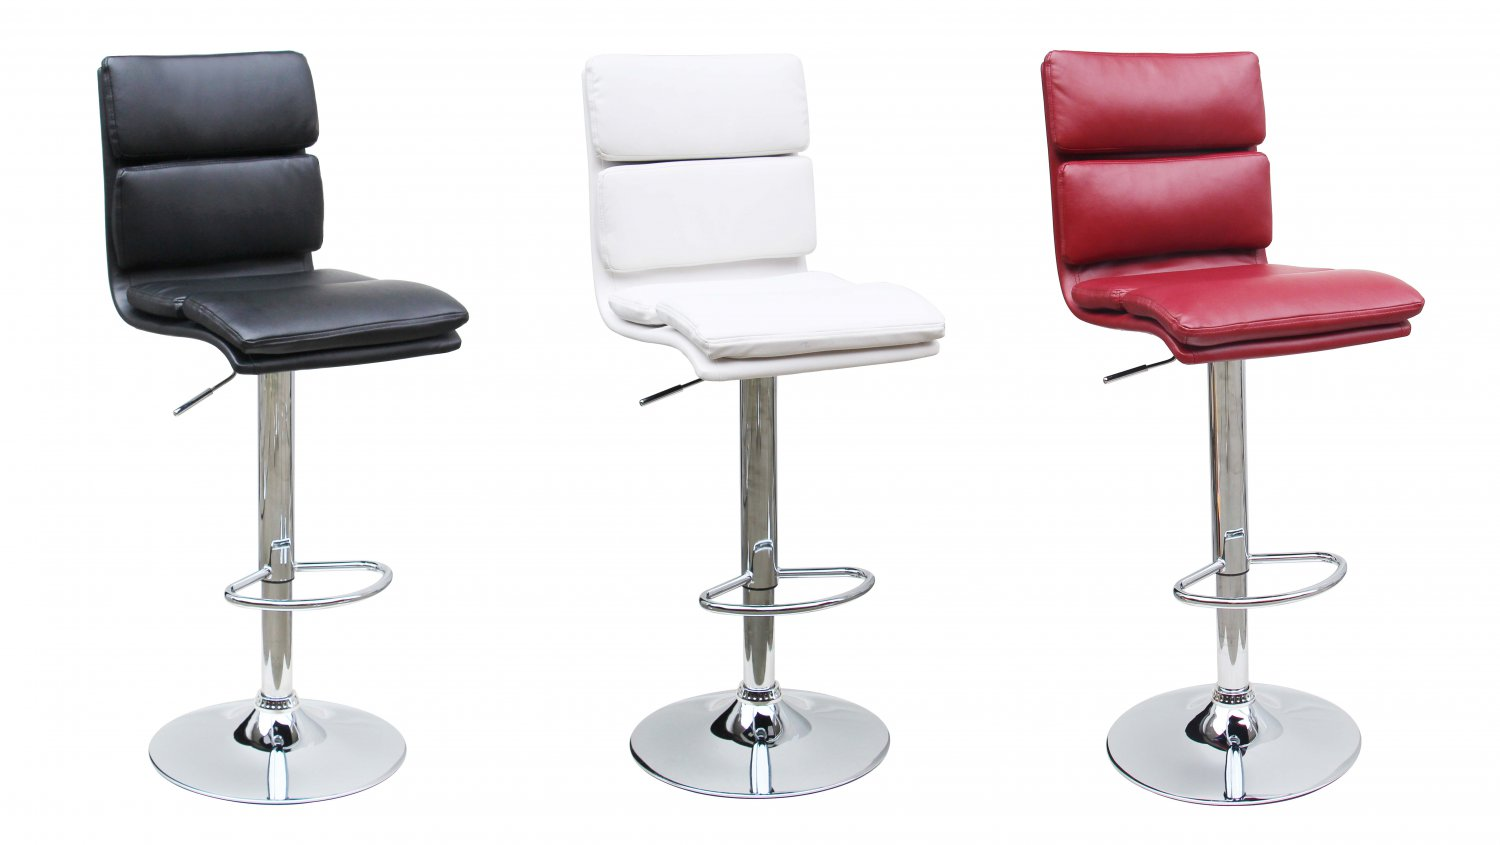 D279 Modern Adjustable Faux Leather Swivel Bar Stool 3